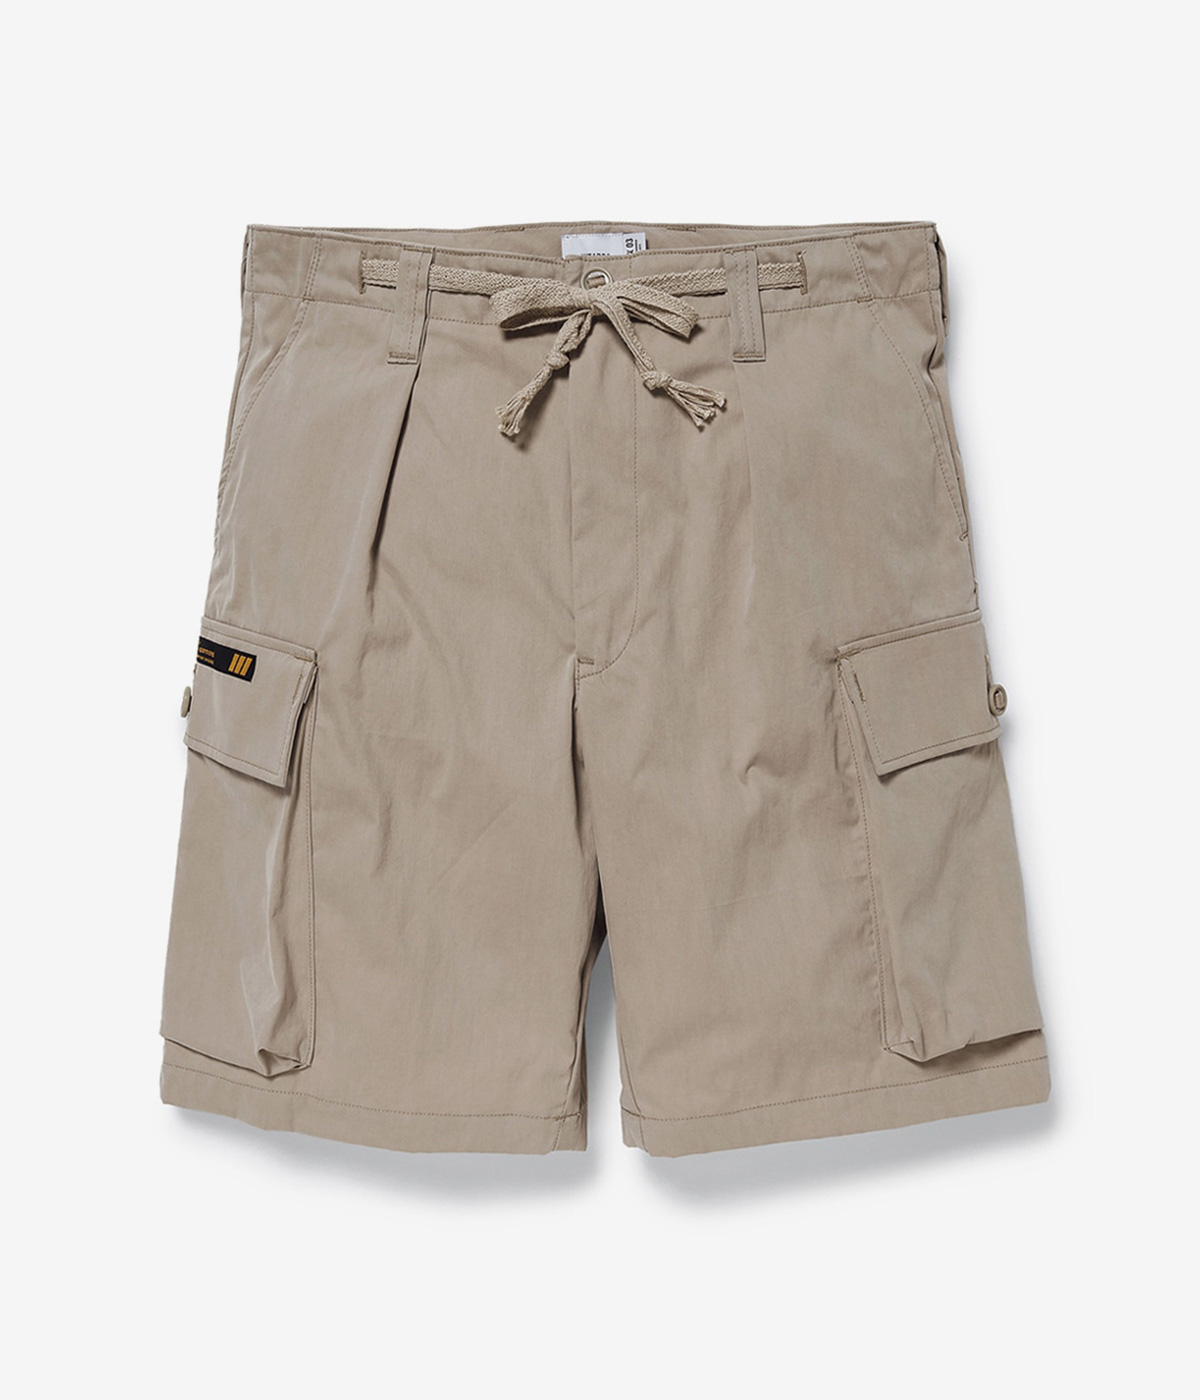 JUNGLE COUNTRY / SHORTS / NYCO. TUSSAH